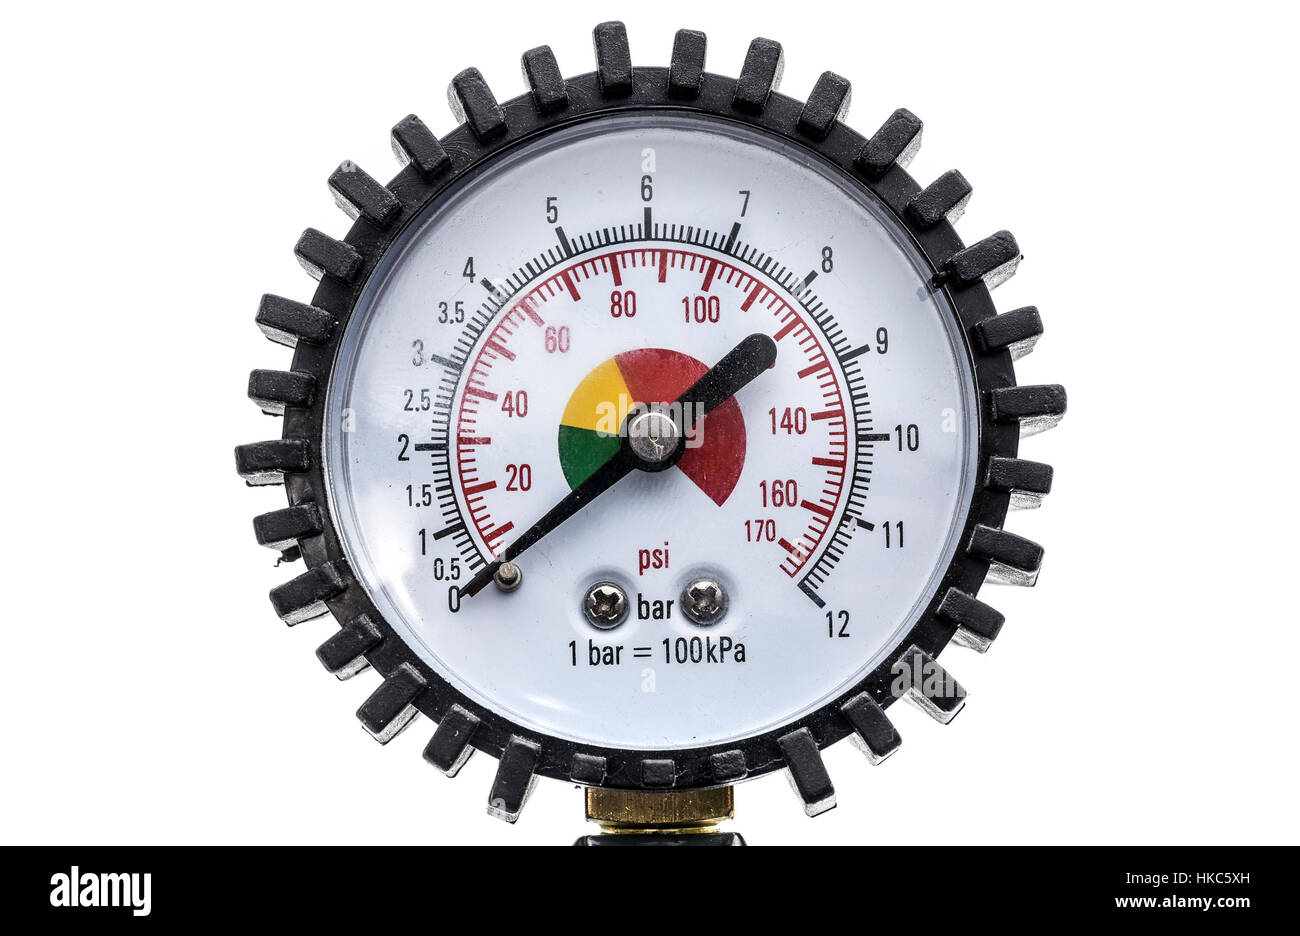 Industrial manometer pressure gauge isolated on a white background. Air compressor gun manometer with black needle Stock Photo